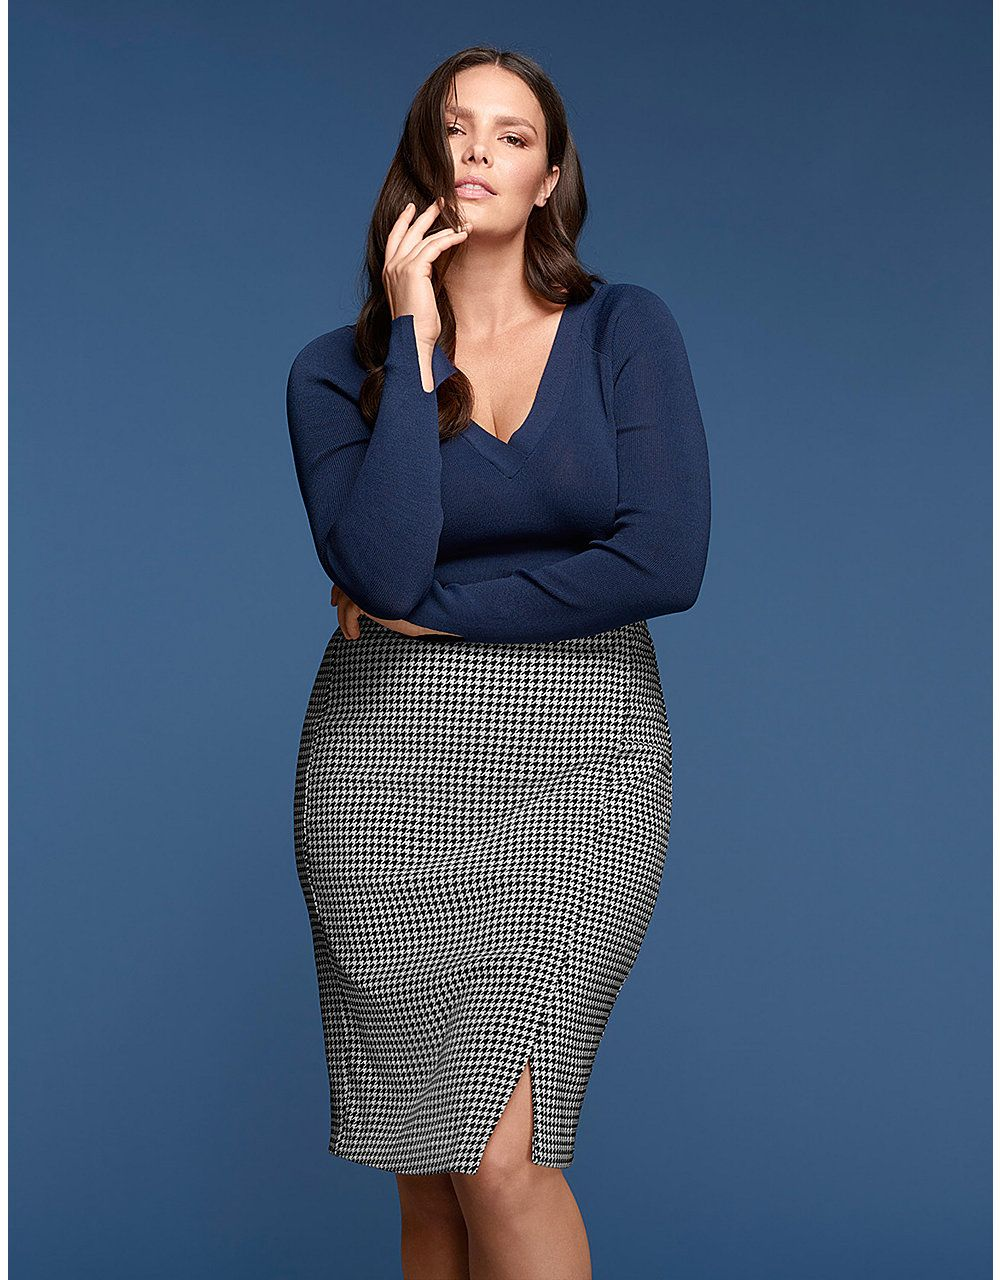 Double V-Neck Sweater by GLAMOUR X LANE BRYANT | Lane Bryant ...